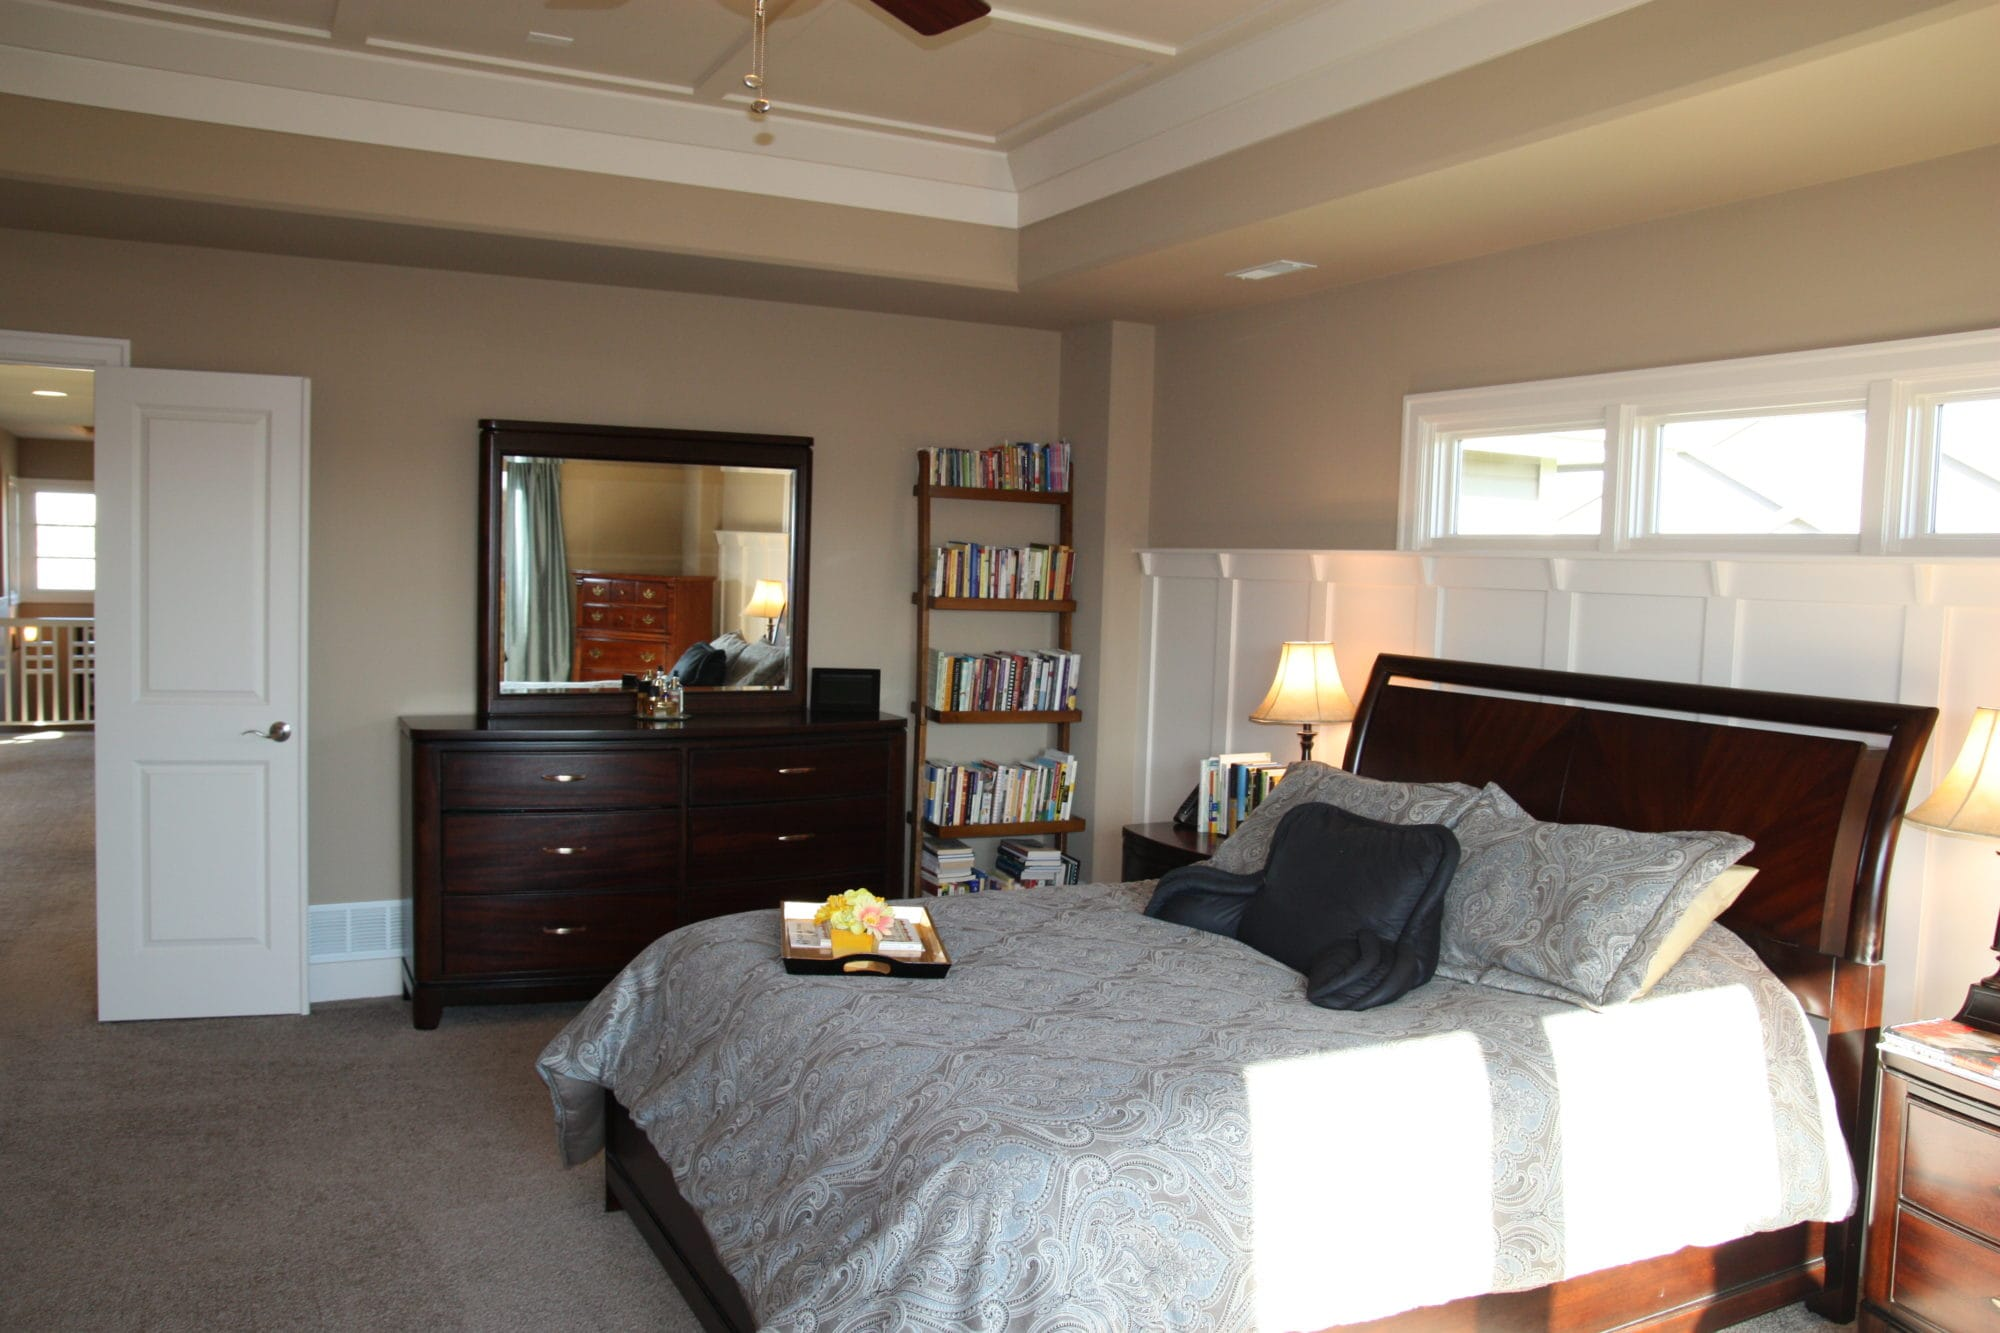 A large bedroom with a dark wood bed, dresser and door opened to the hallway.